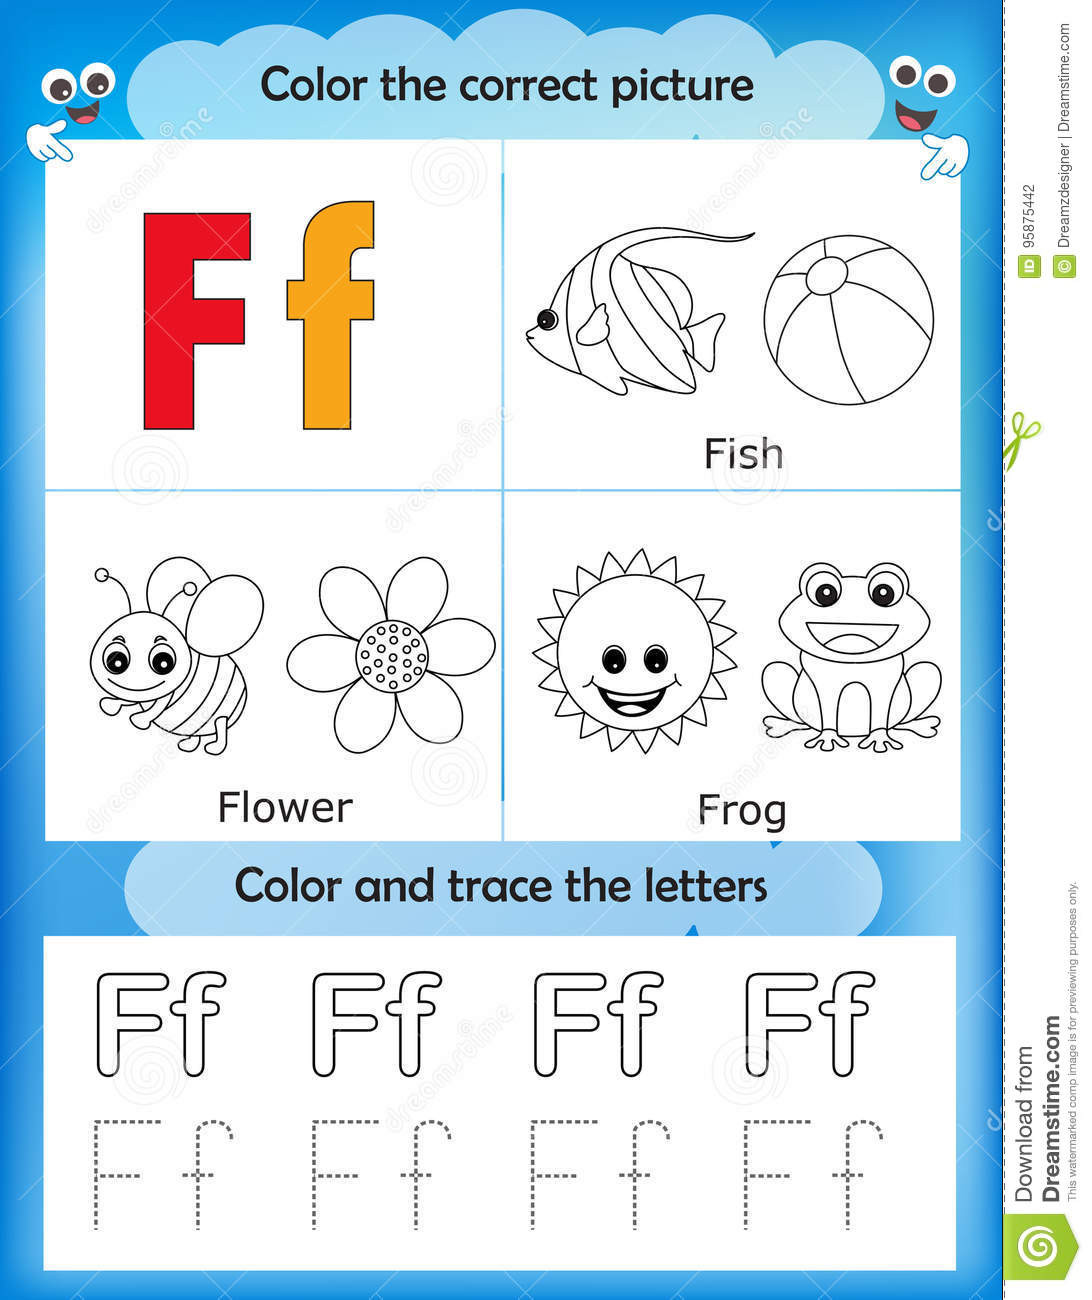 F Worksheets for Preschool Alphabet Learning and Color Letter F Stock Illustration